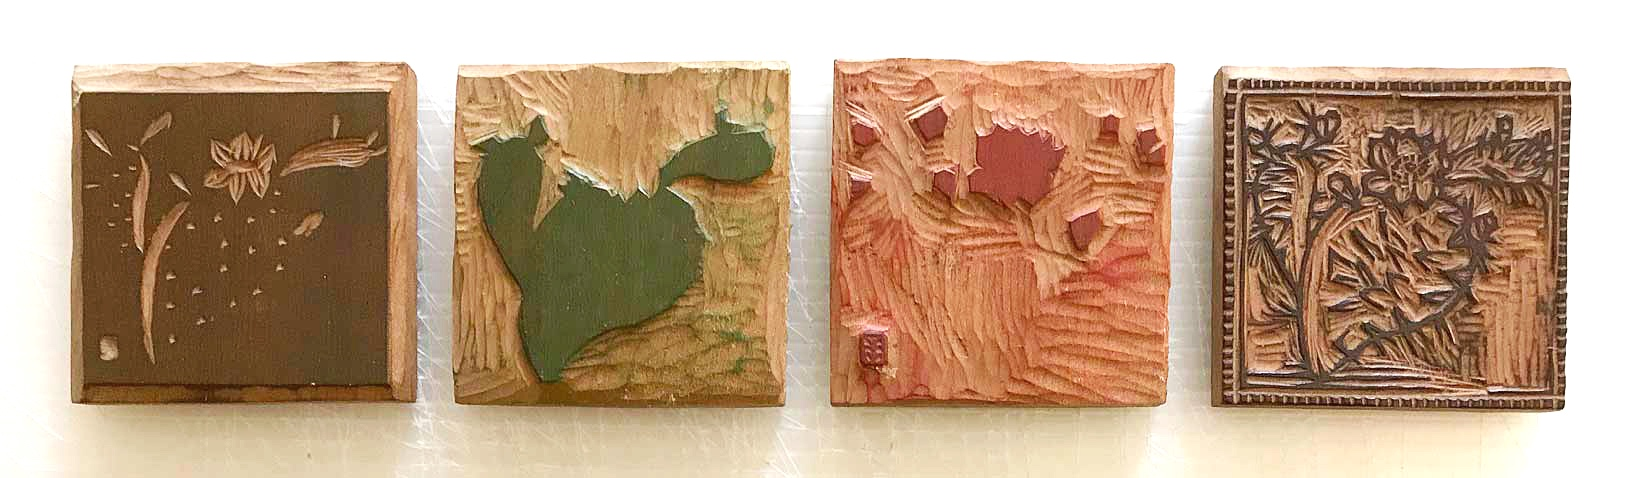 Prickly-Pear-Blocks